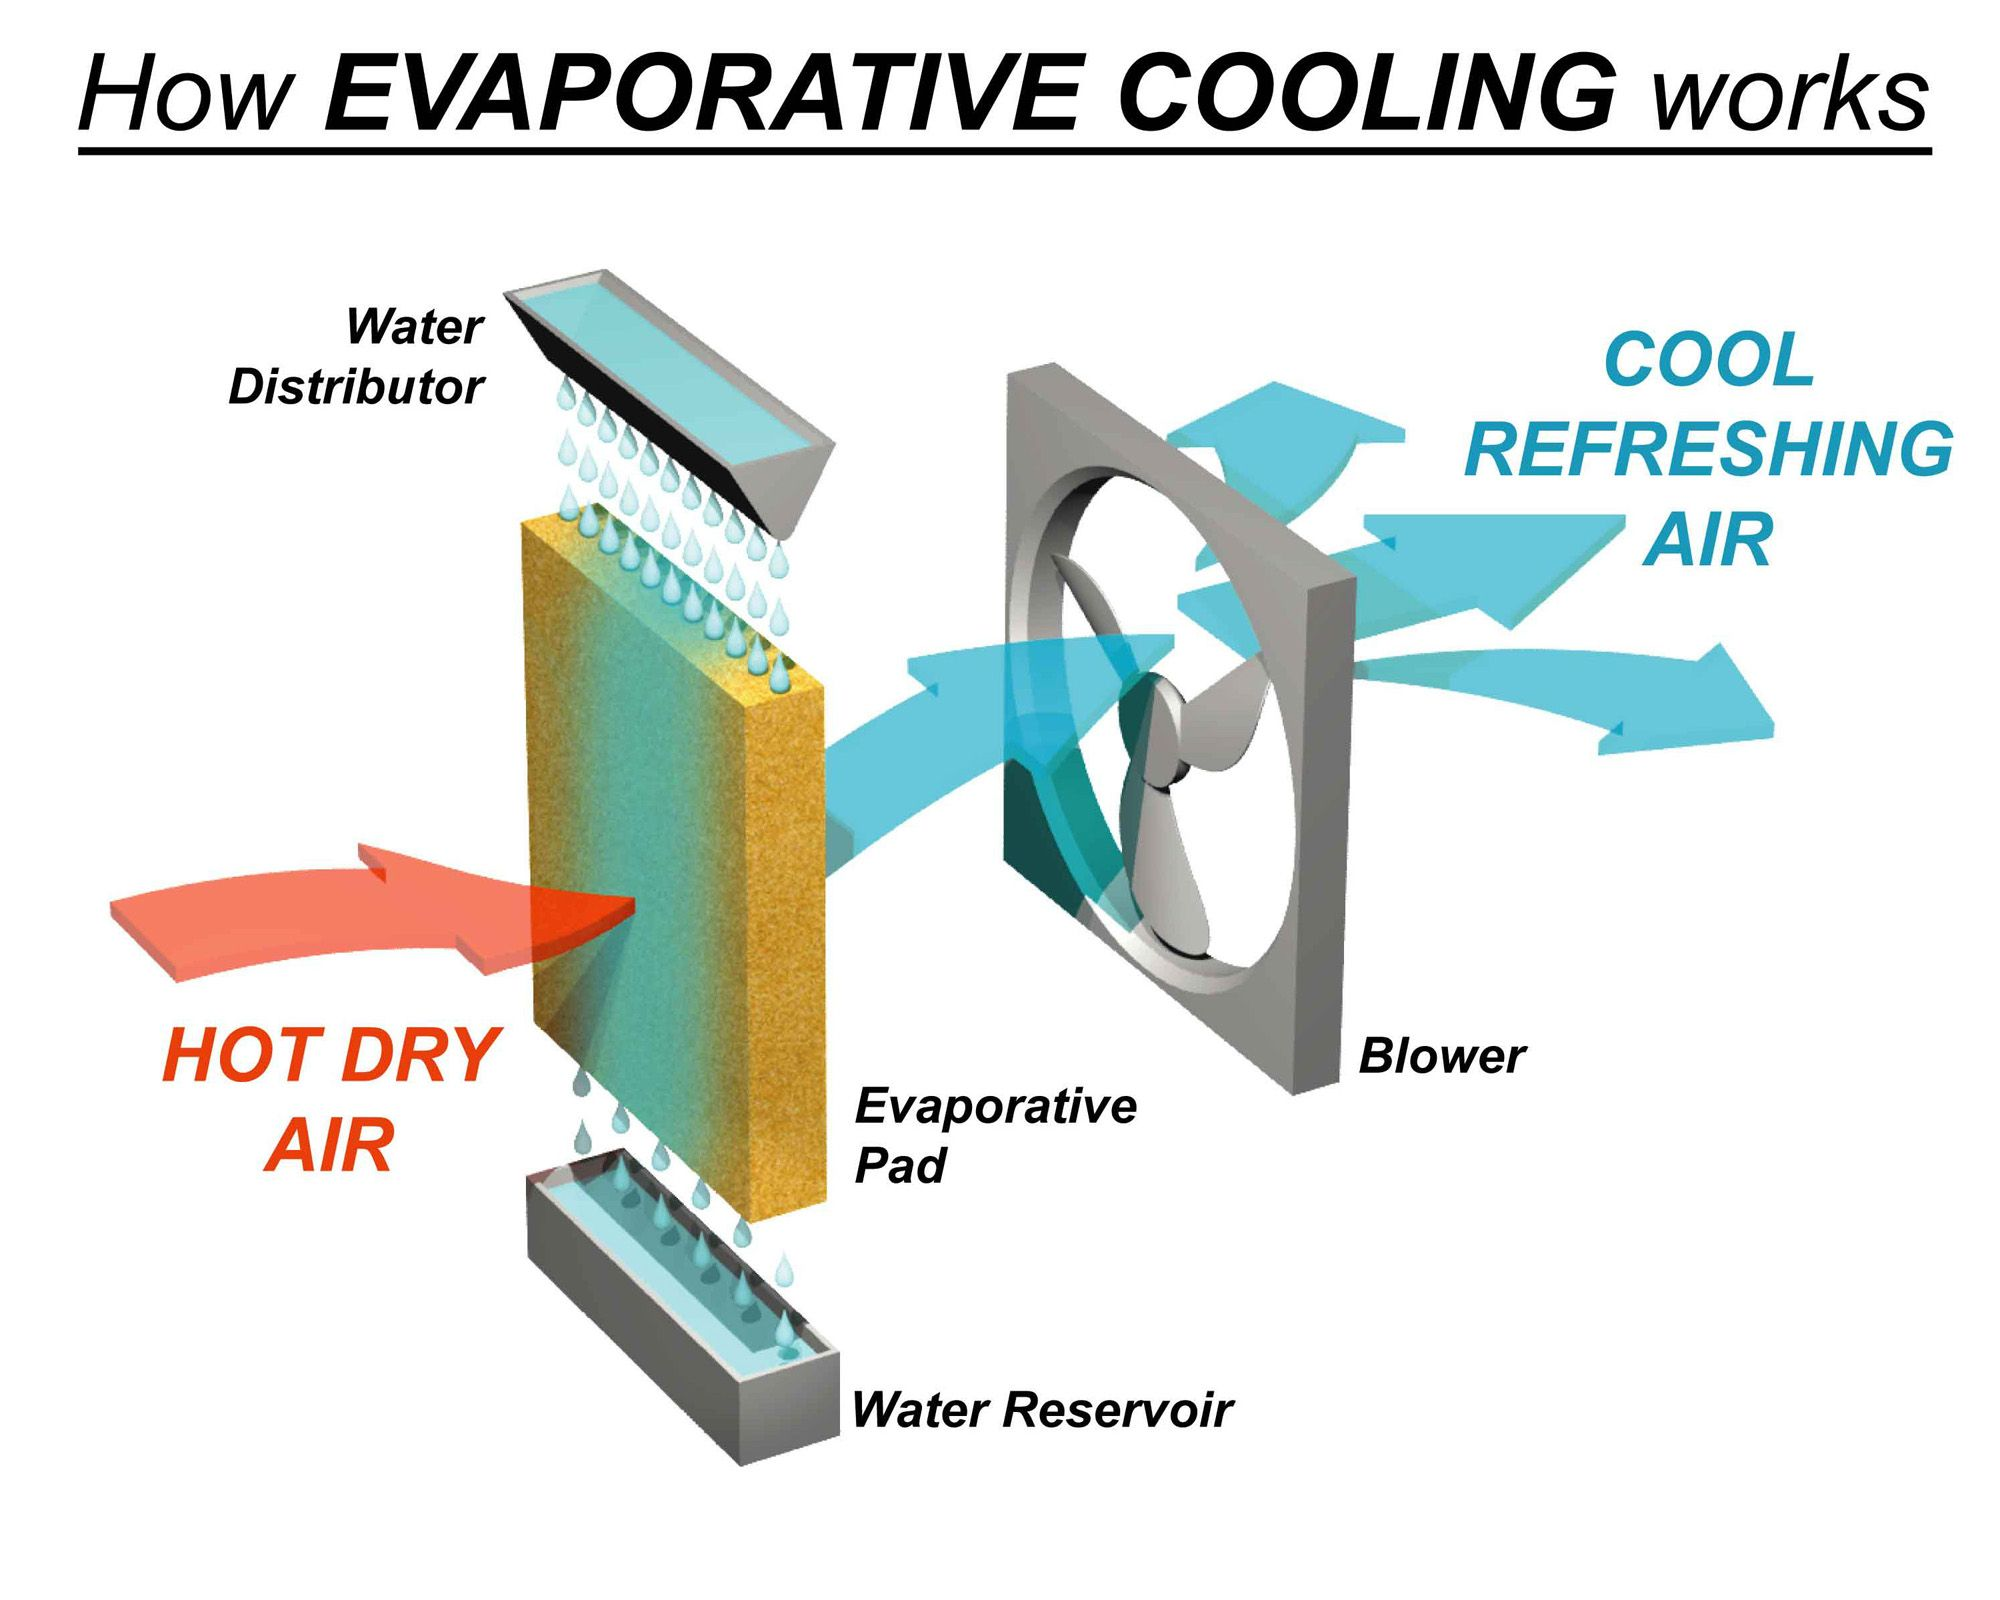 D I Y Inspired Evaporative Cooler Design For Remote Military